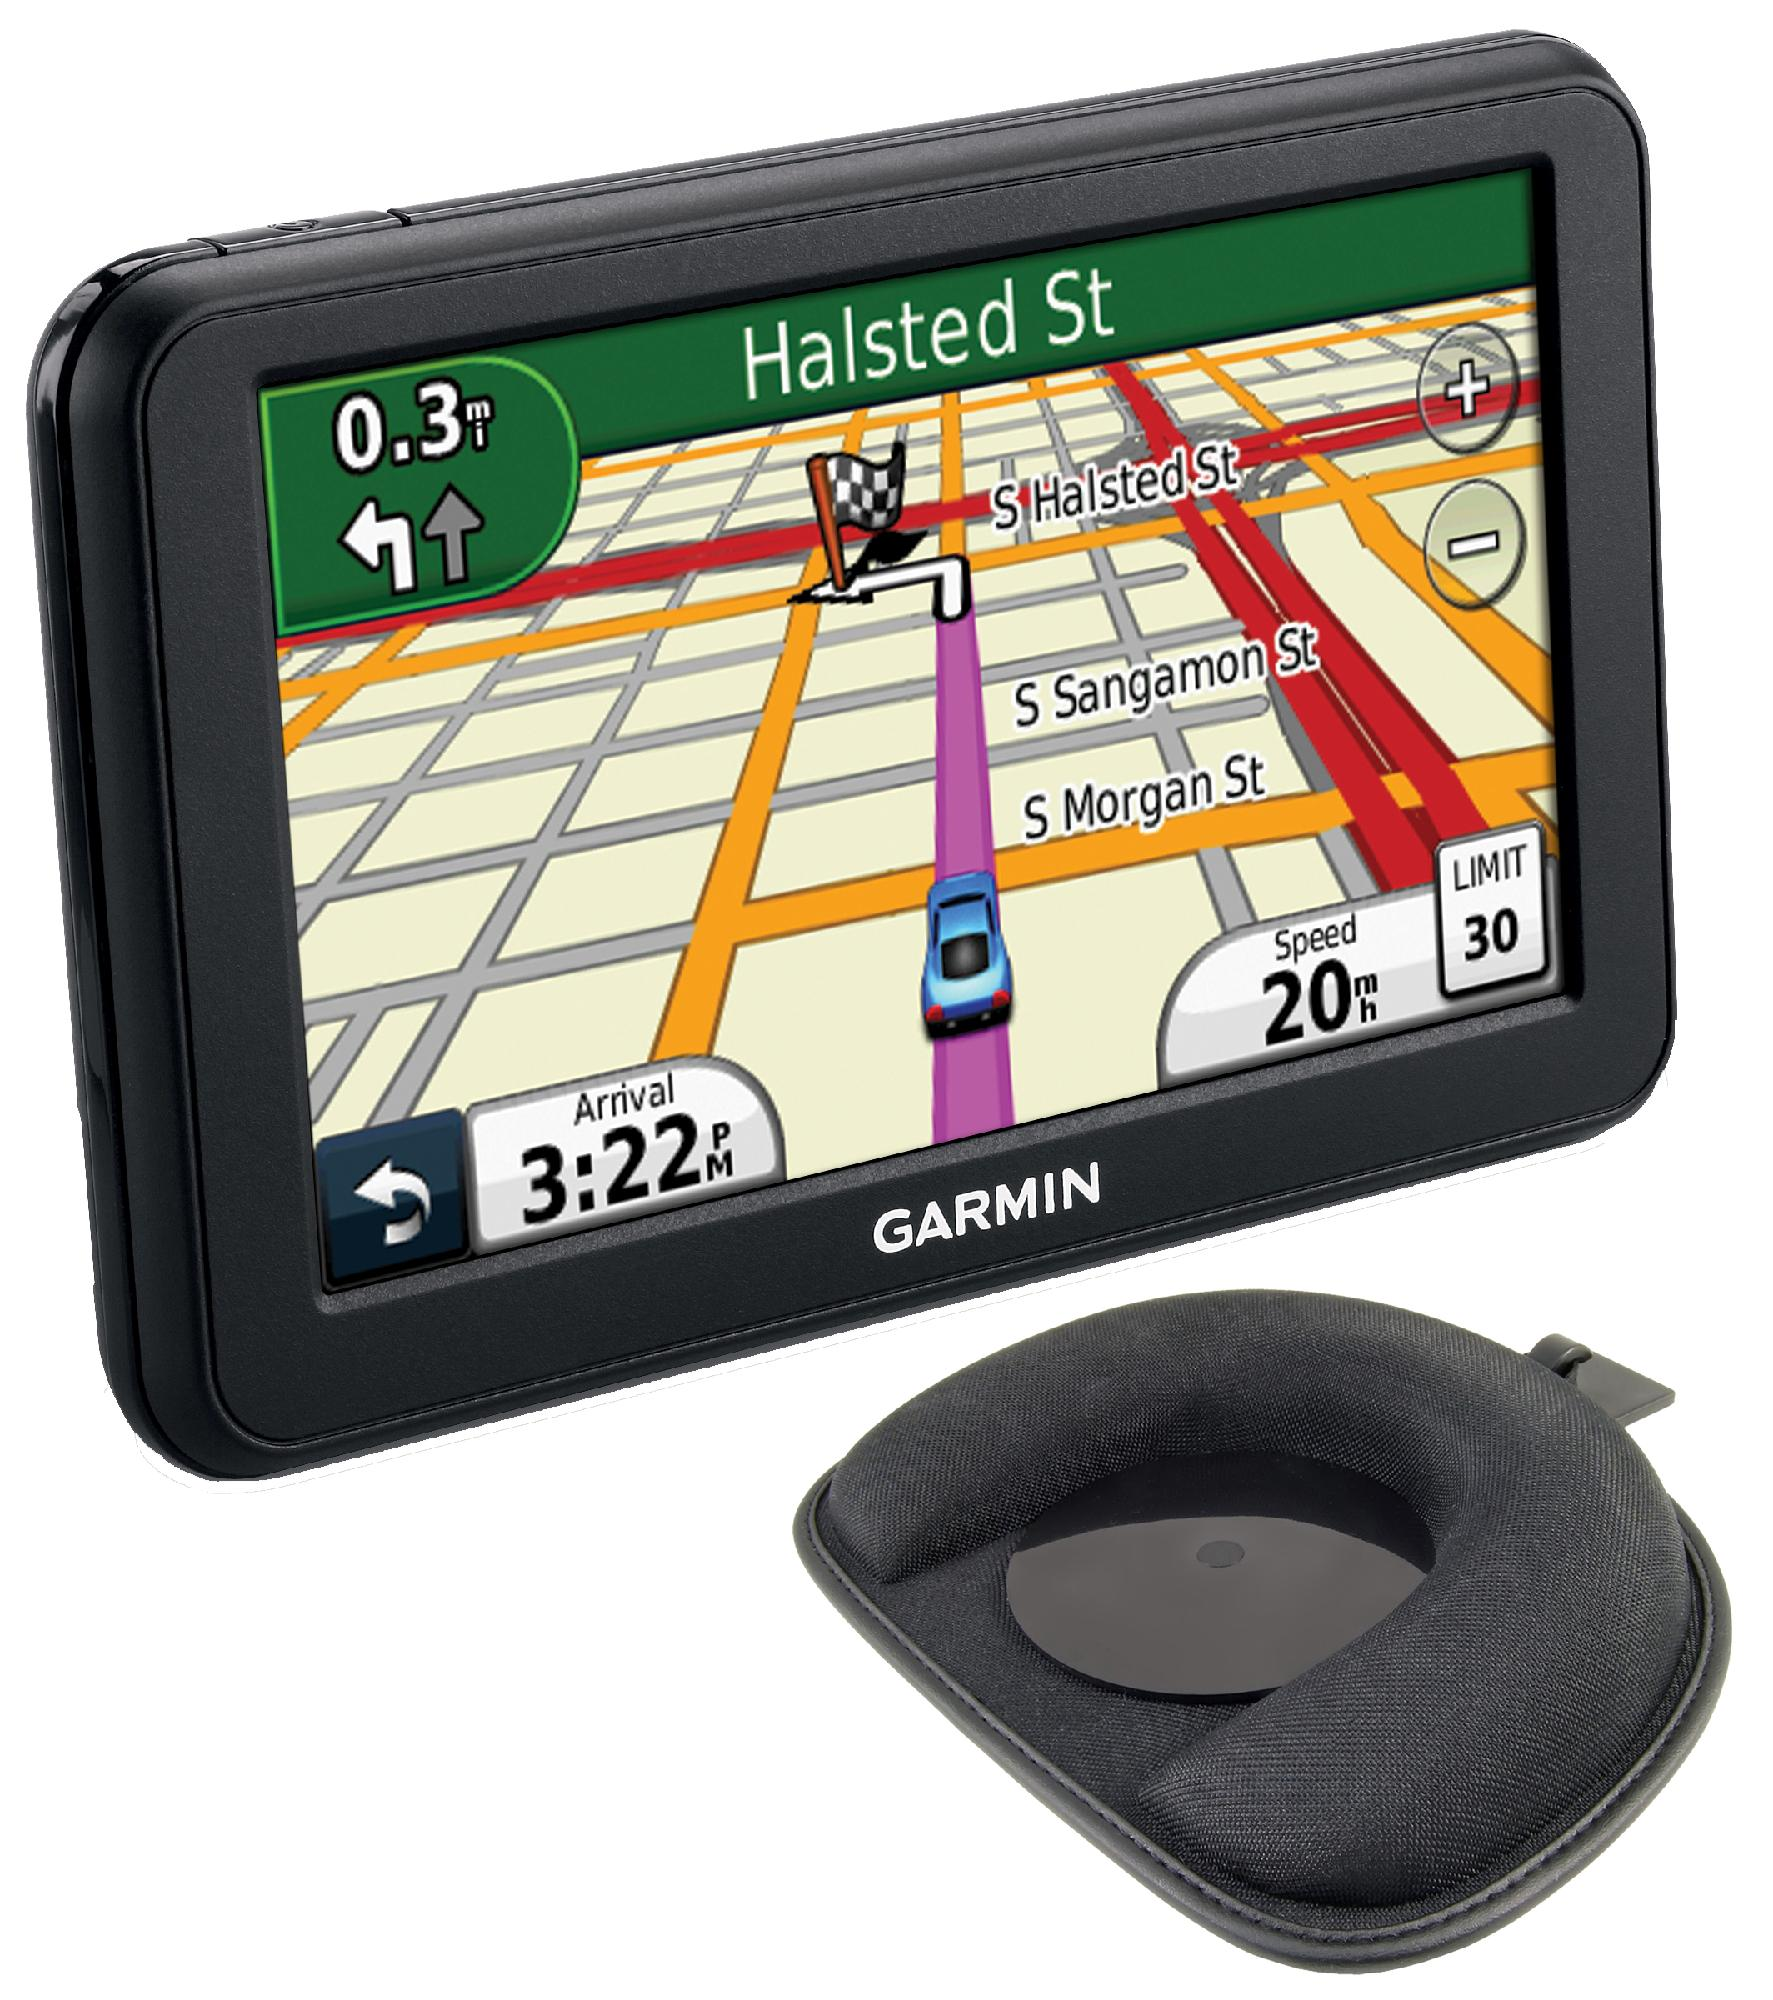 Nuvi 40 4.3 In. GPS Navigator and Portable